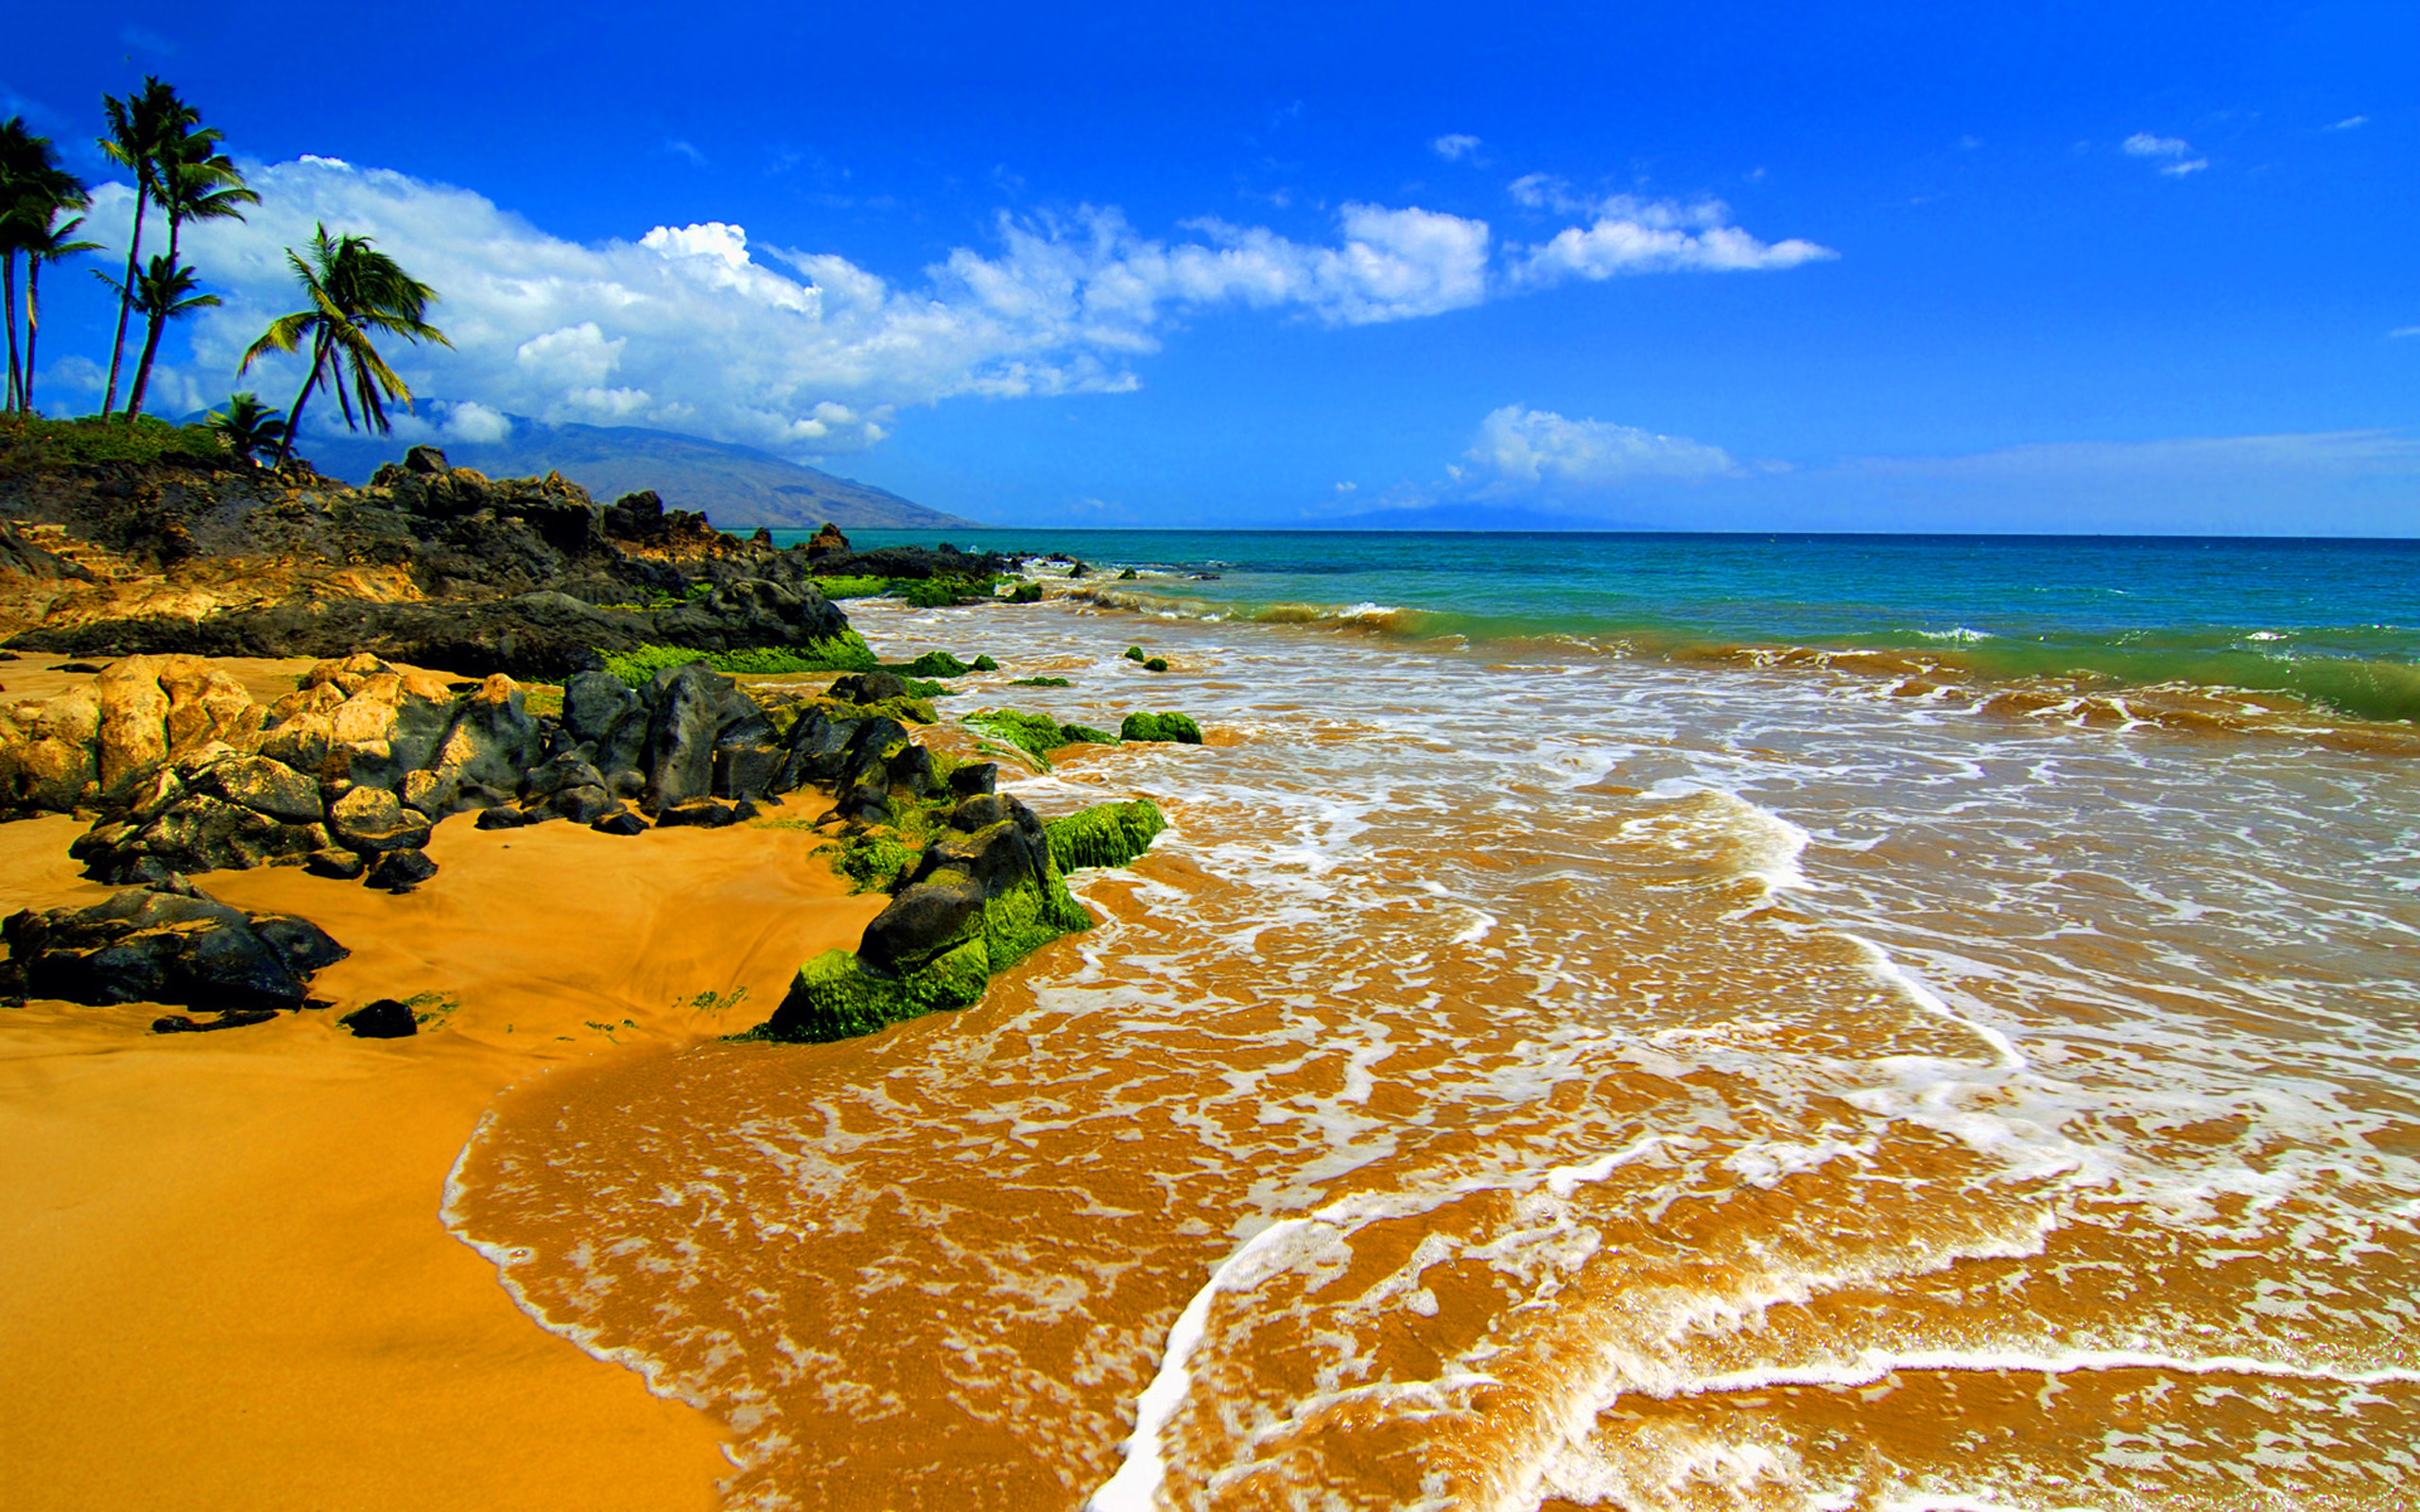 Big Beach Maui Hawaii Hd Wallpapers Wallpapers13com 2560x1600